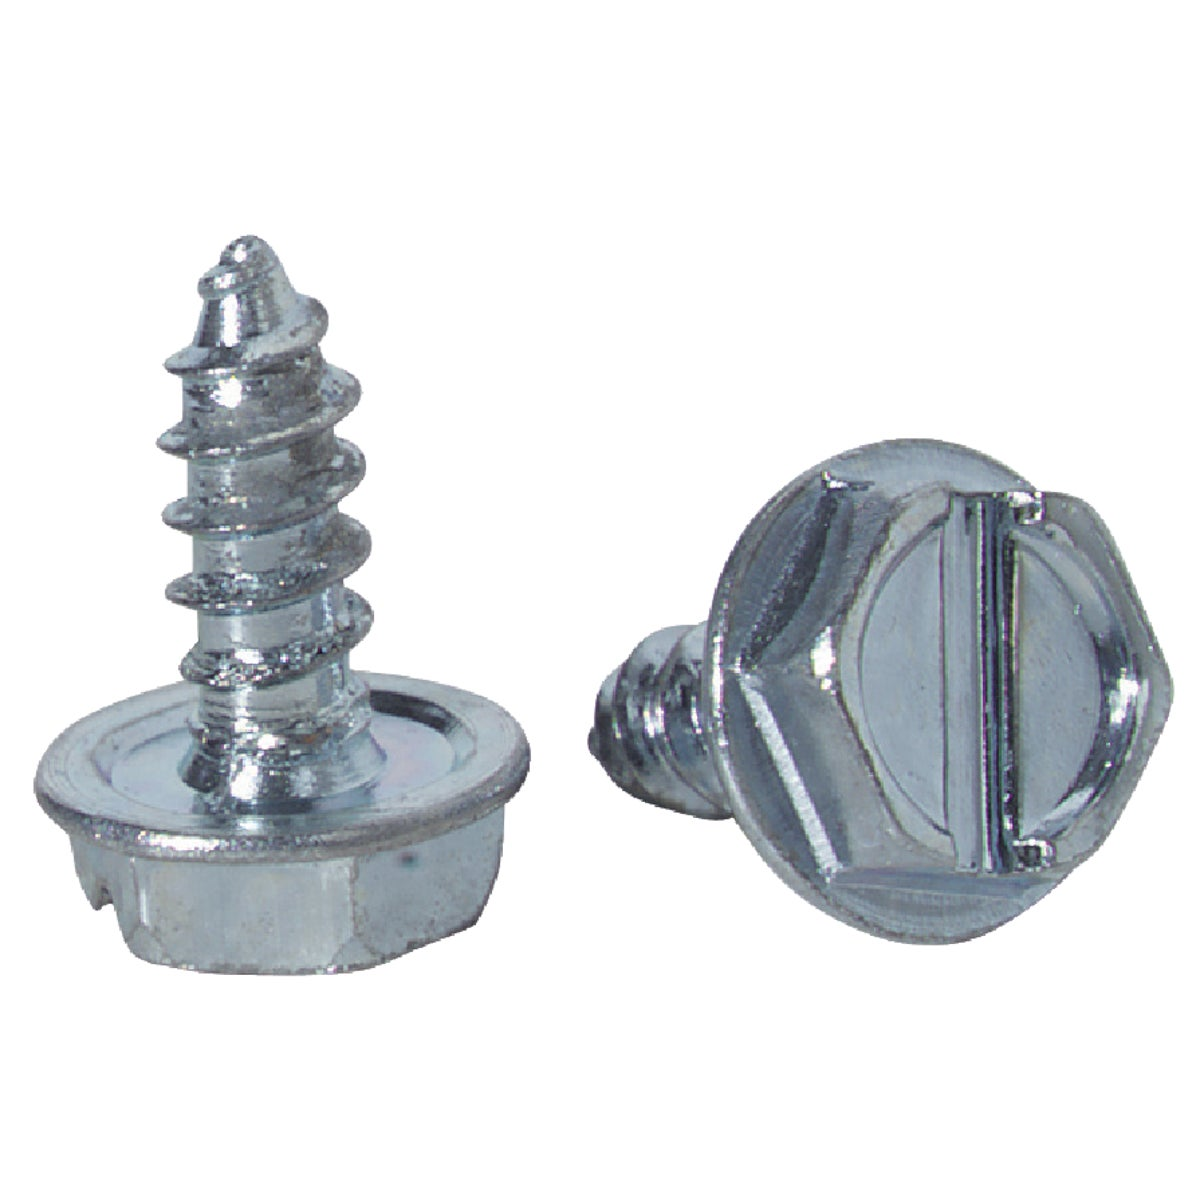 6X3/8 HWH SHT MTL SCREW - 70250 by Hillman Fastener